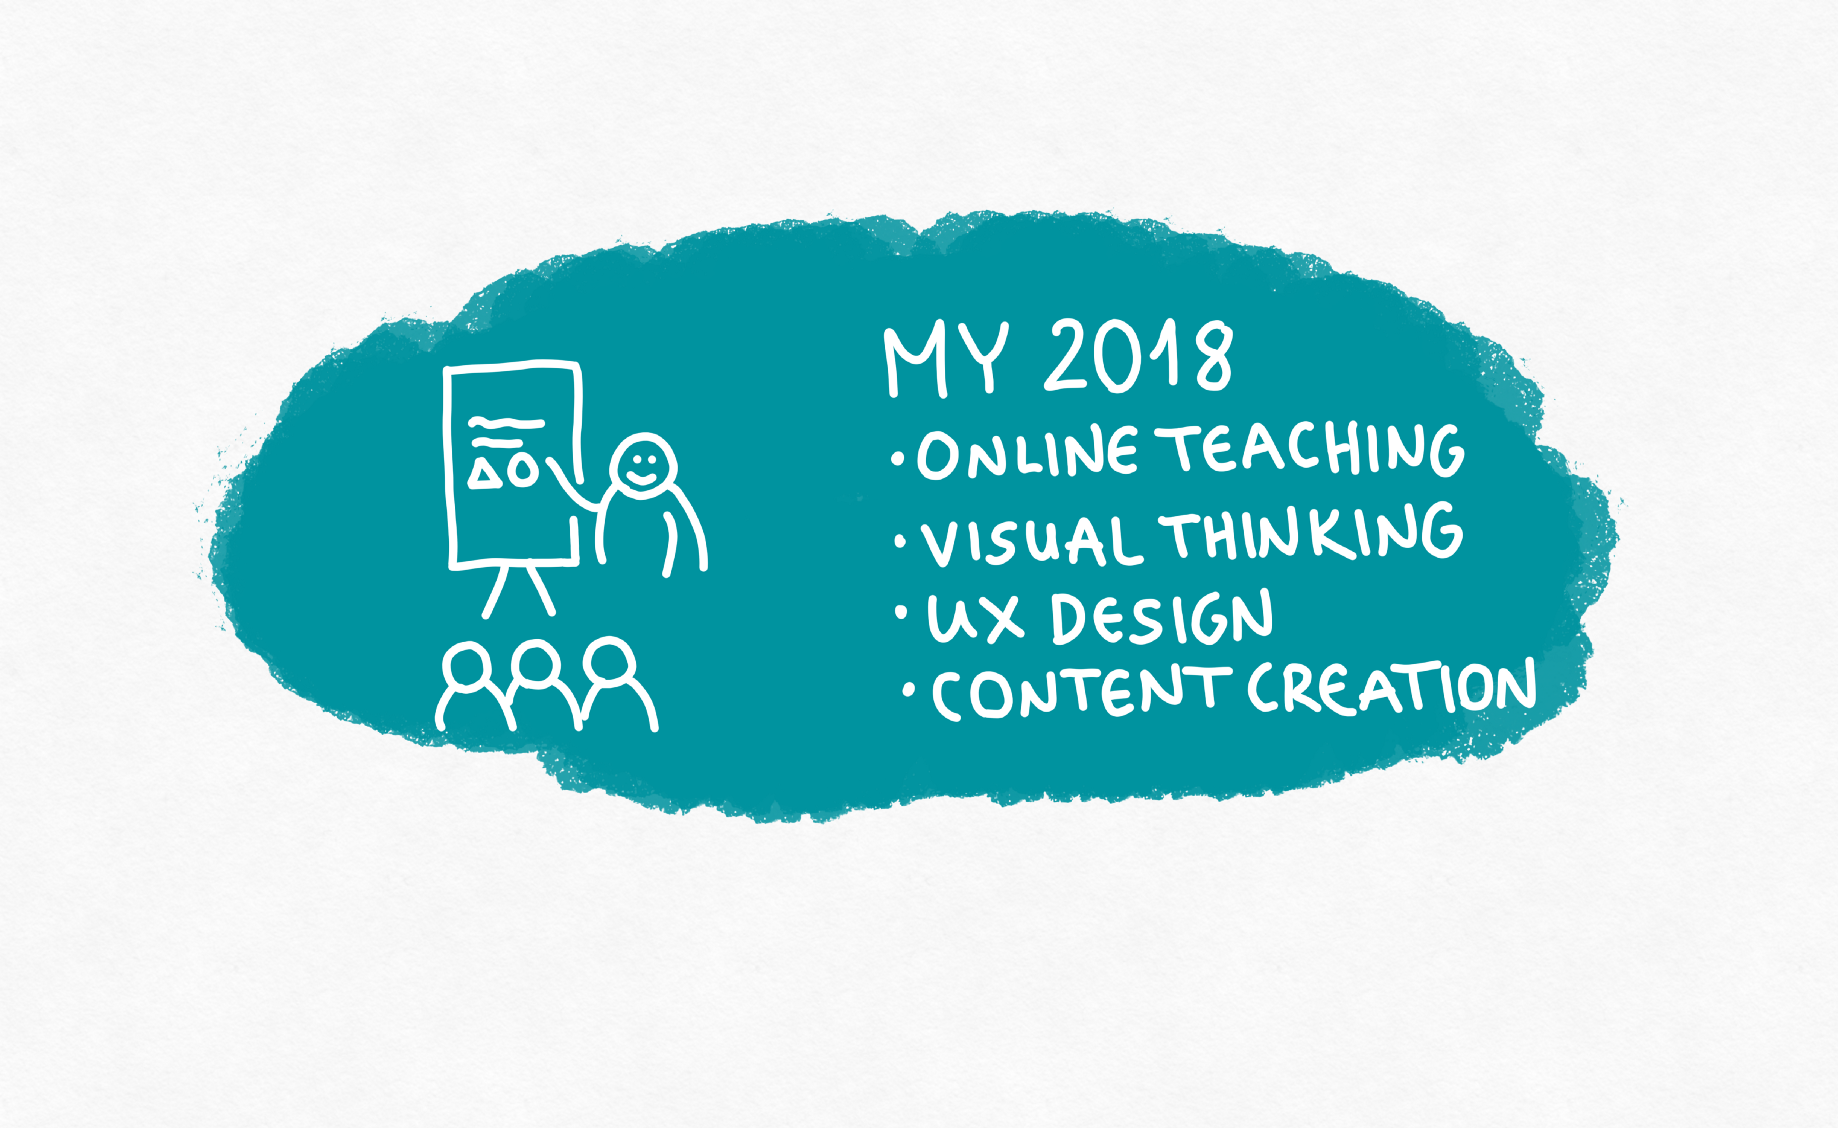 Summary of my 2018: sketching for UX, online teaching and UX design